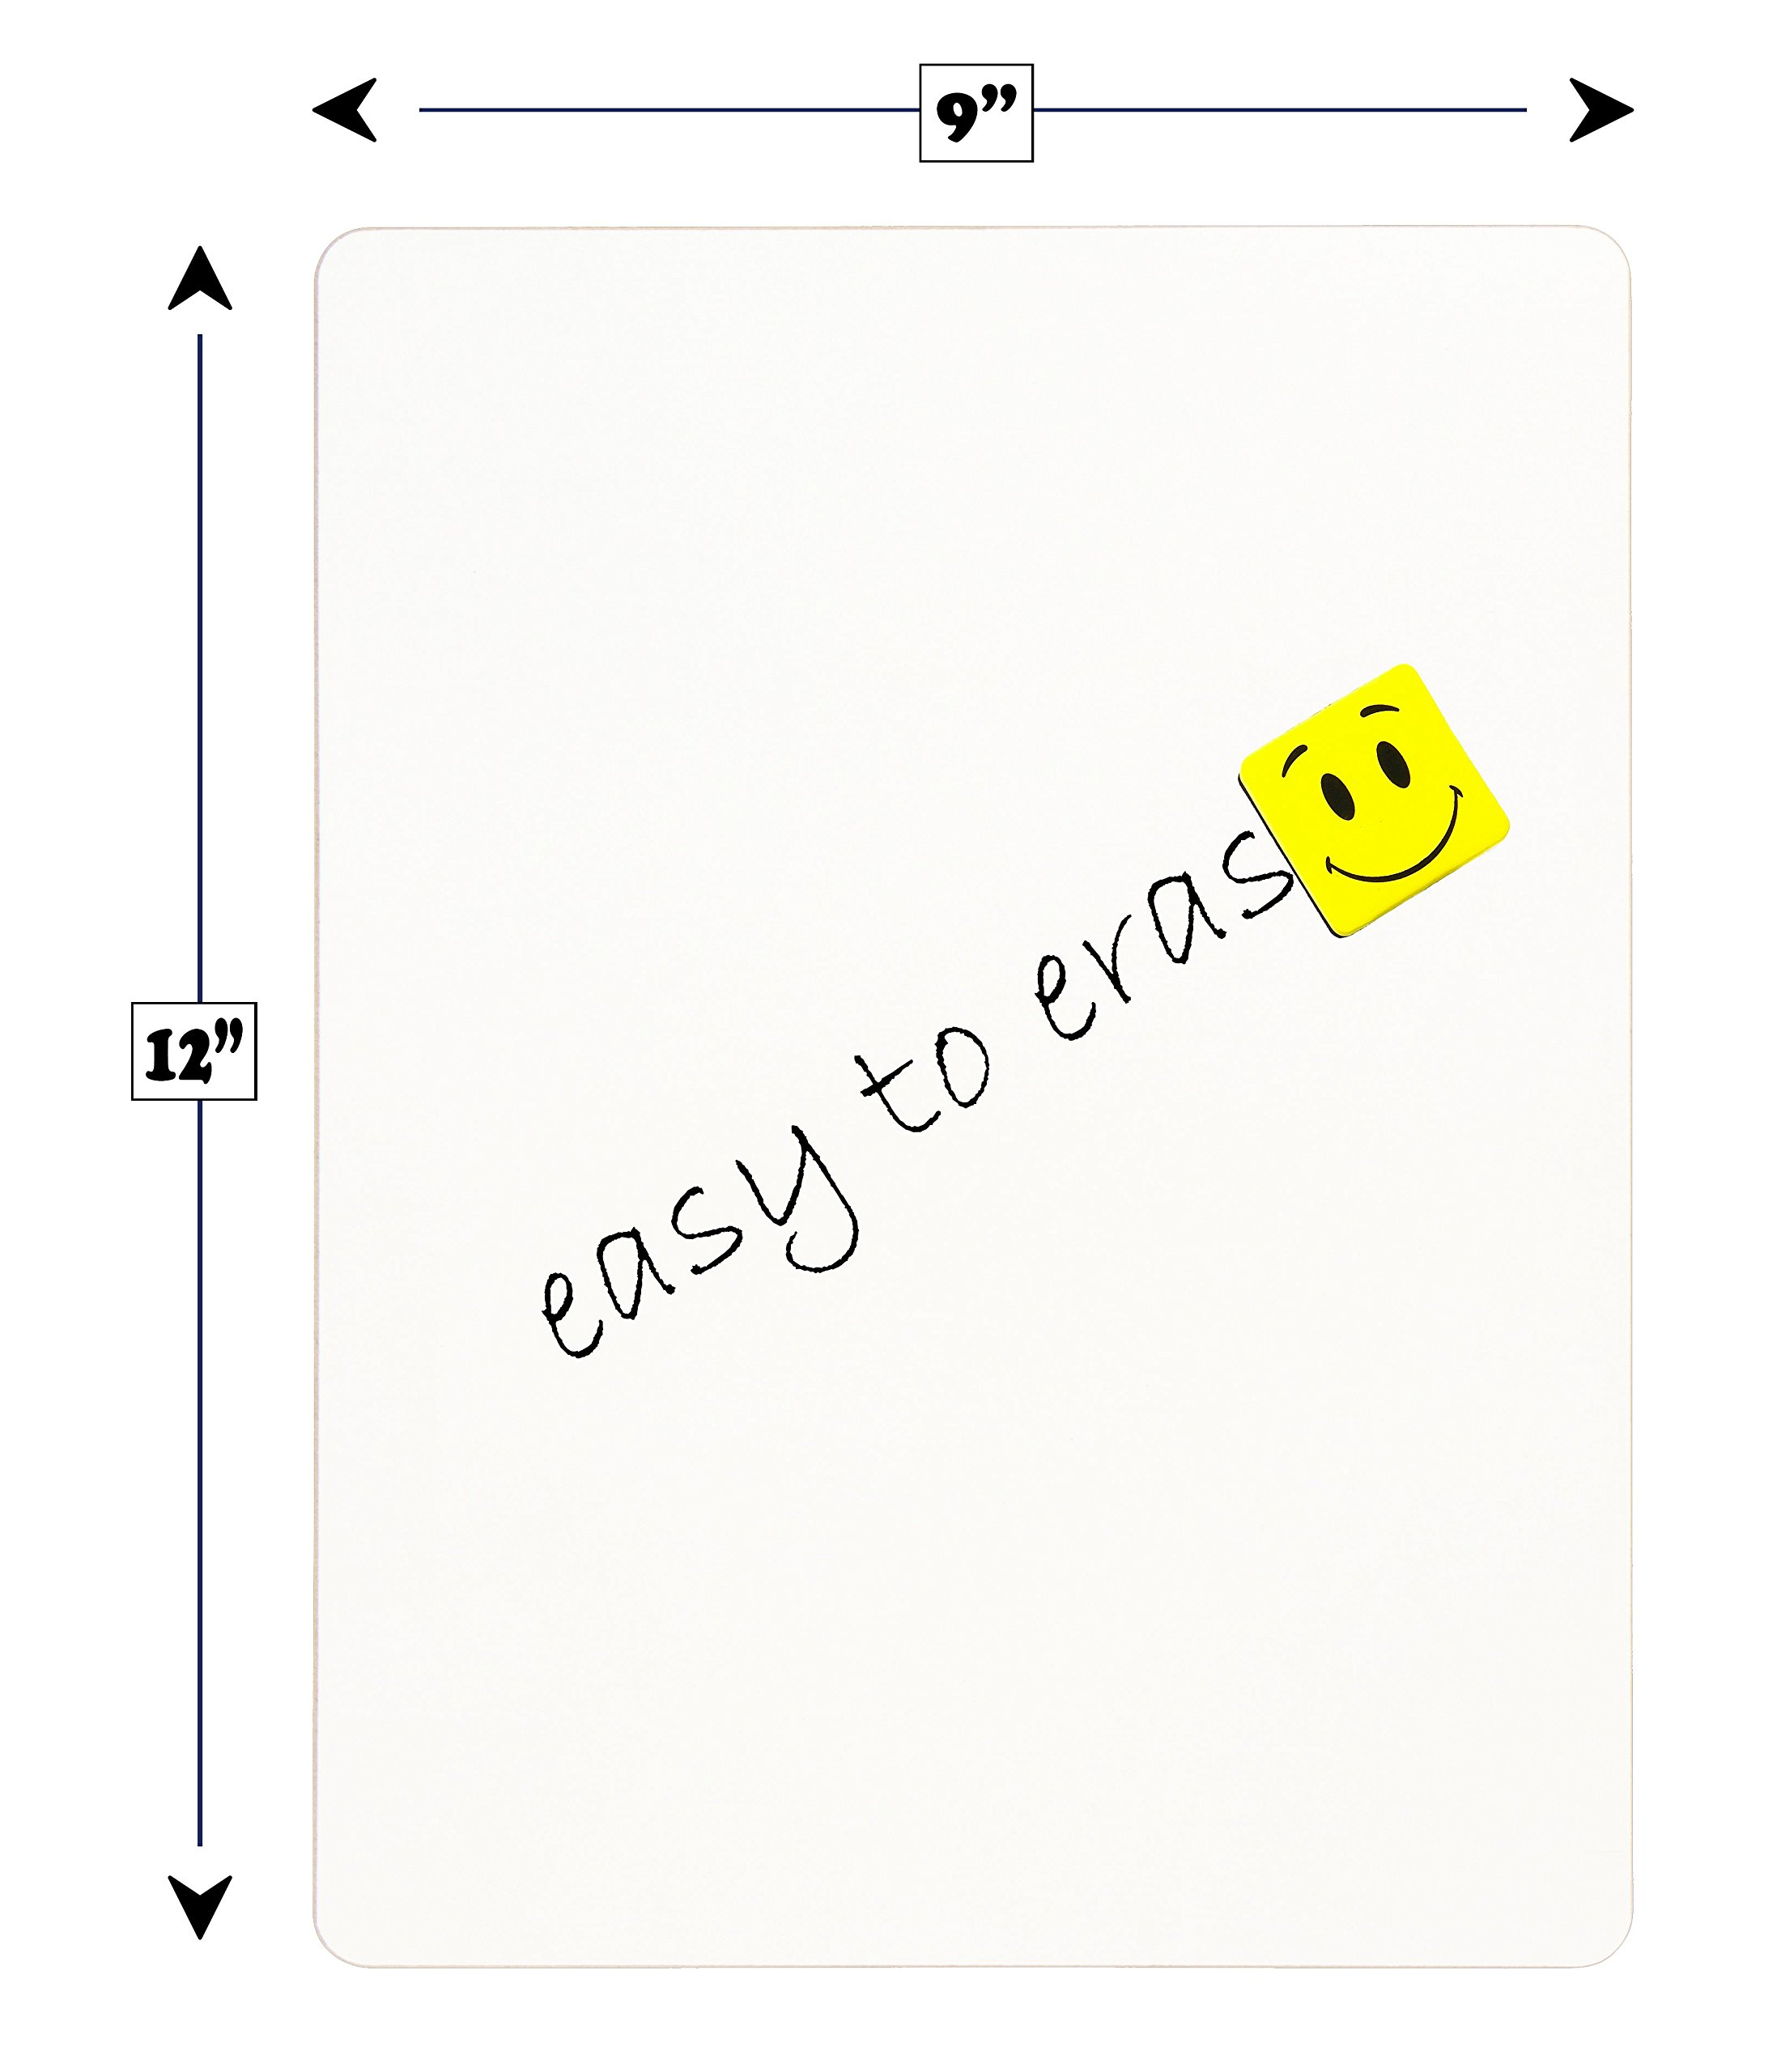 "DOUBLE SIDED Dry Erase Lapboards Pack Bulk Includes 30 Pcs 9 x 12"" Inch Mini Small Whiteboards With Erasers and Markers For School Students Write Large Classroom Drawing Interactive Office Supplies by Dapper Display (Image #6)"